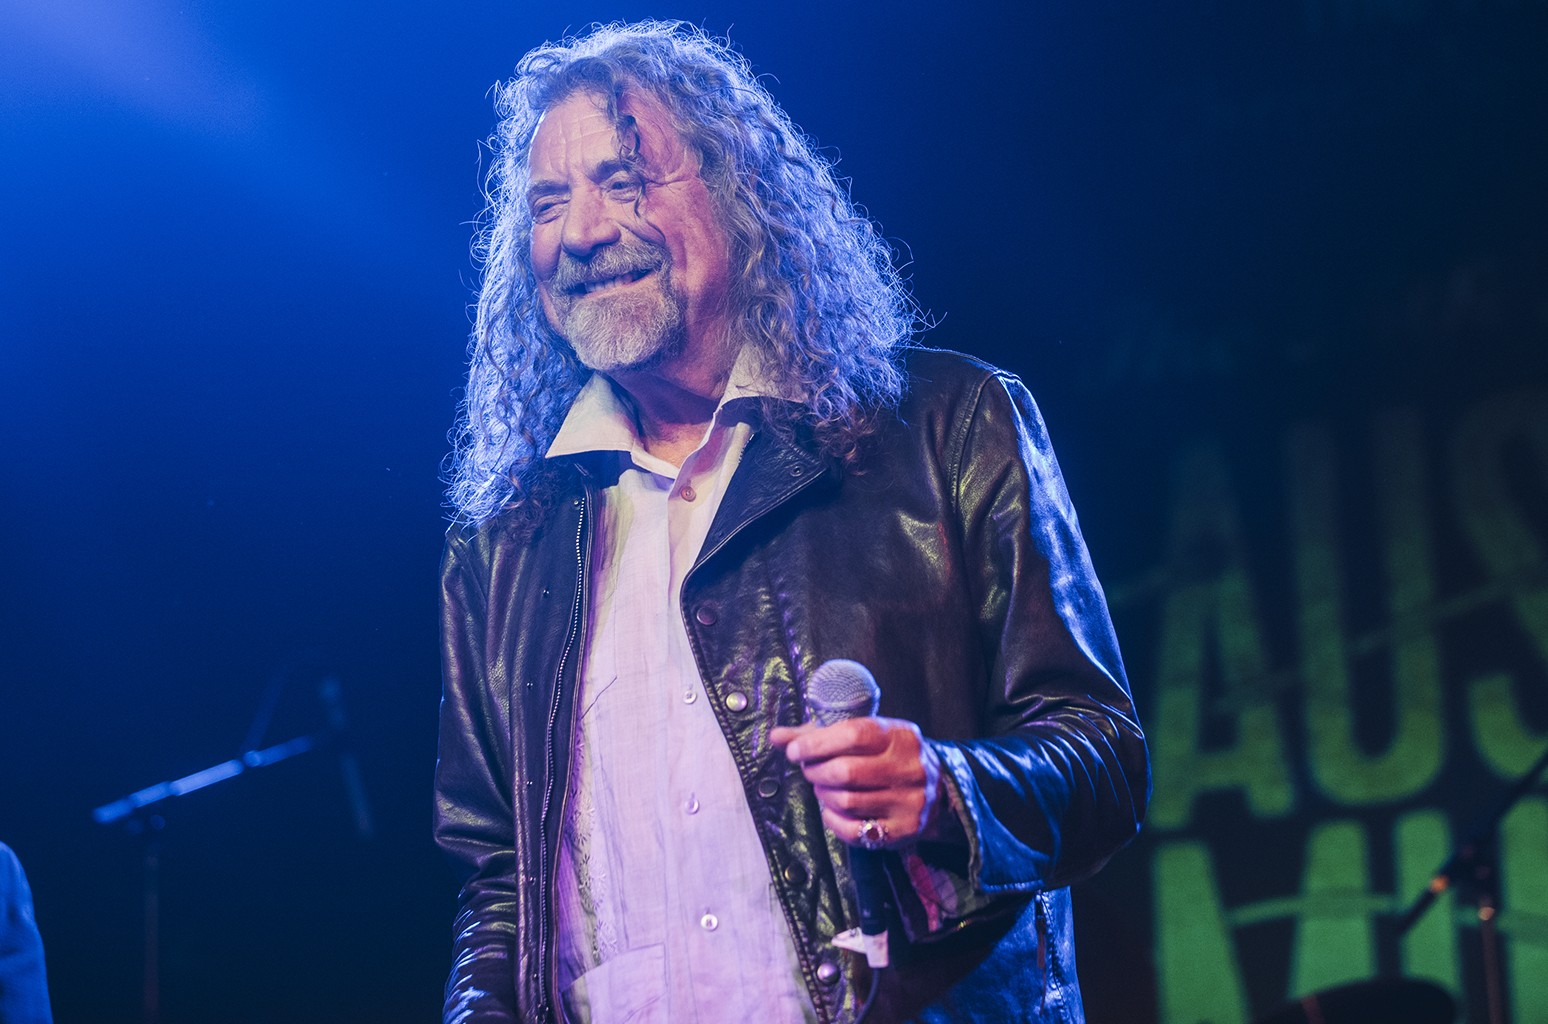 Robert Plant performs during SXSW